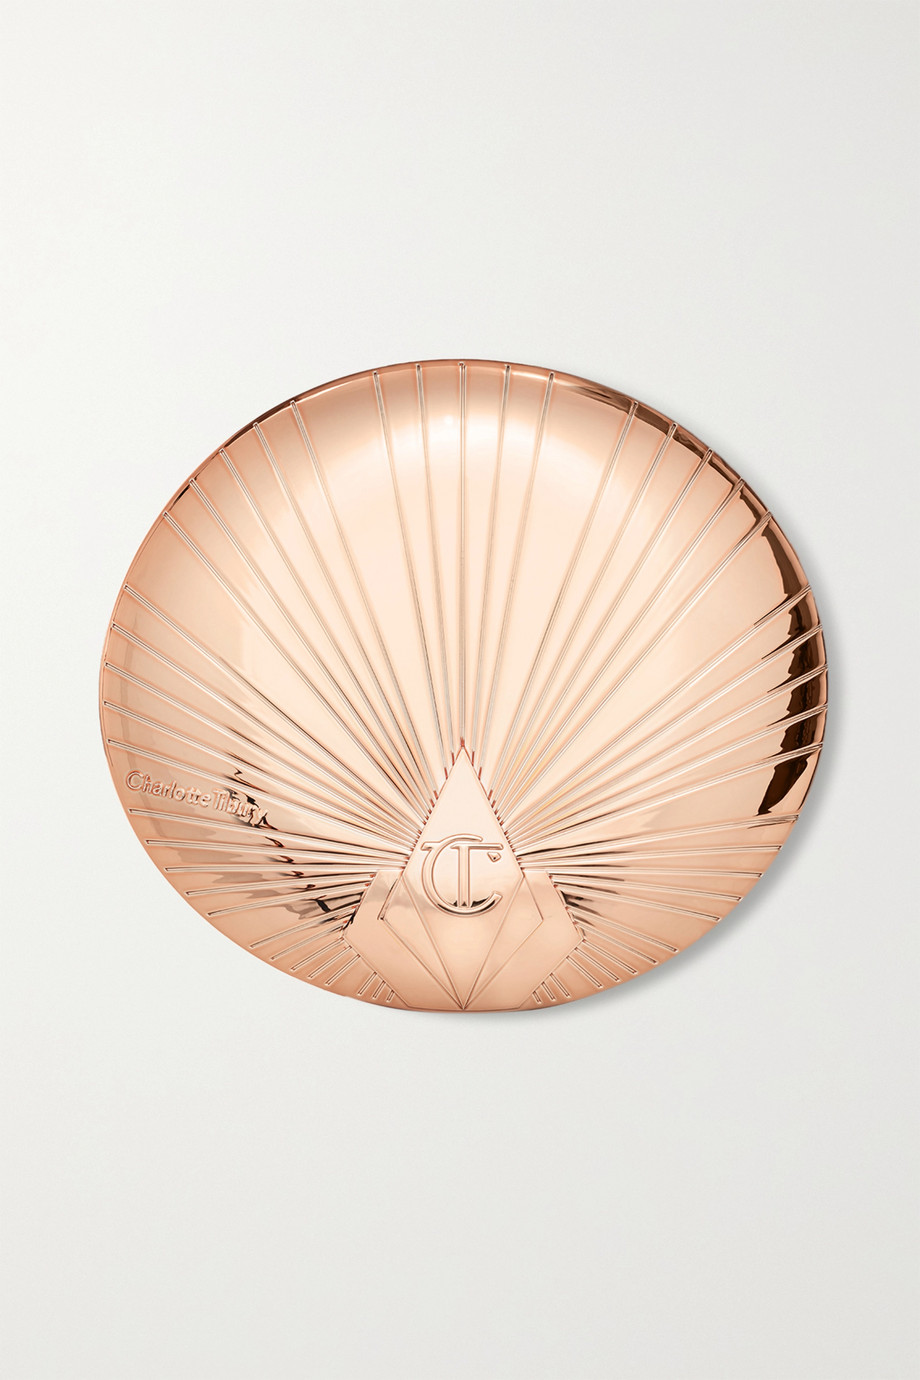 Charlotte Tilbury Airbrush Flawless Bronzer - Medium